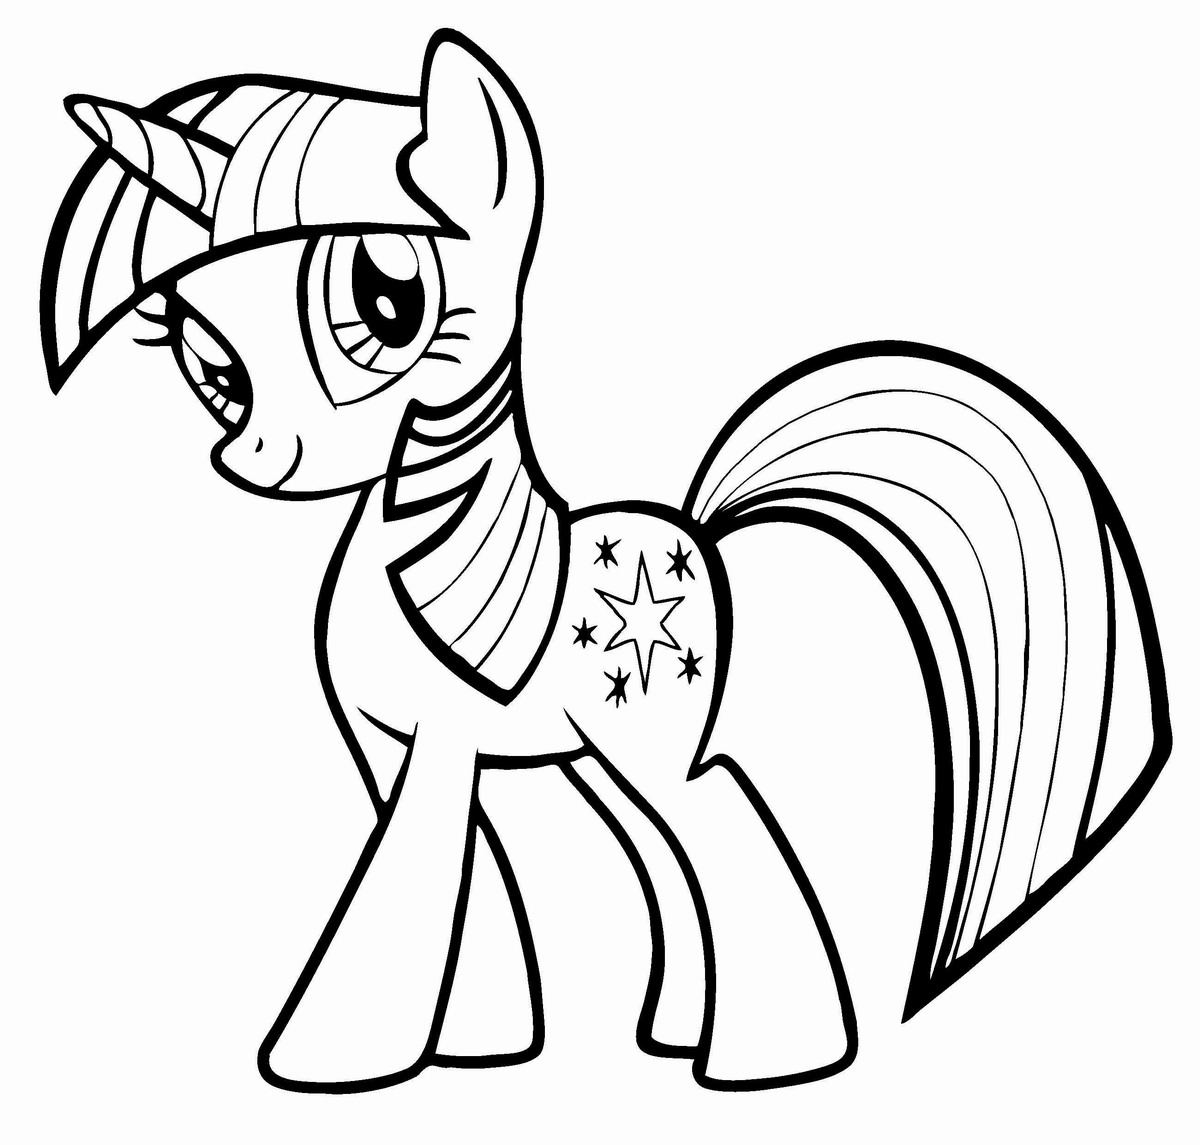 my little pony print out coloring pages free printable my little pony coloring pages for kids out my pages coloring pony little print